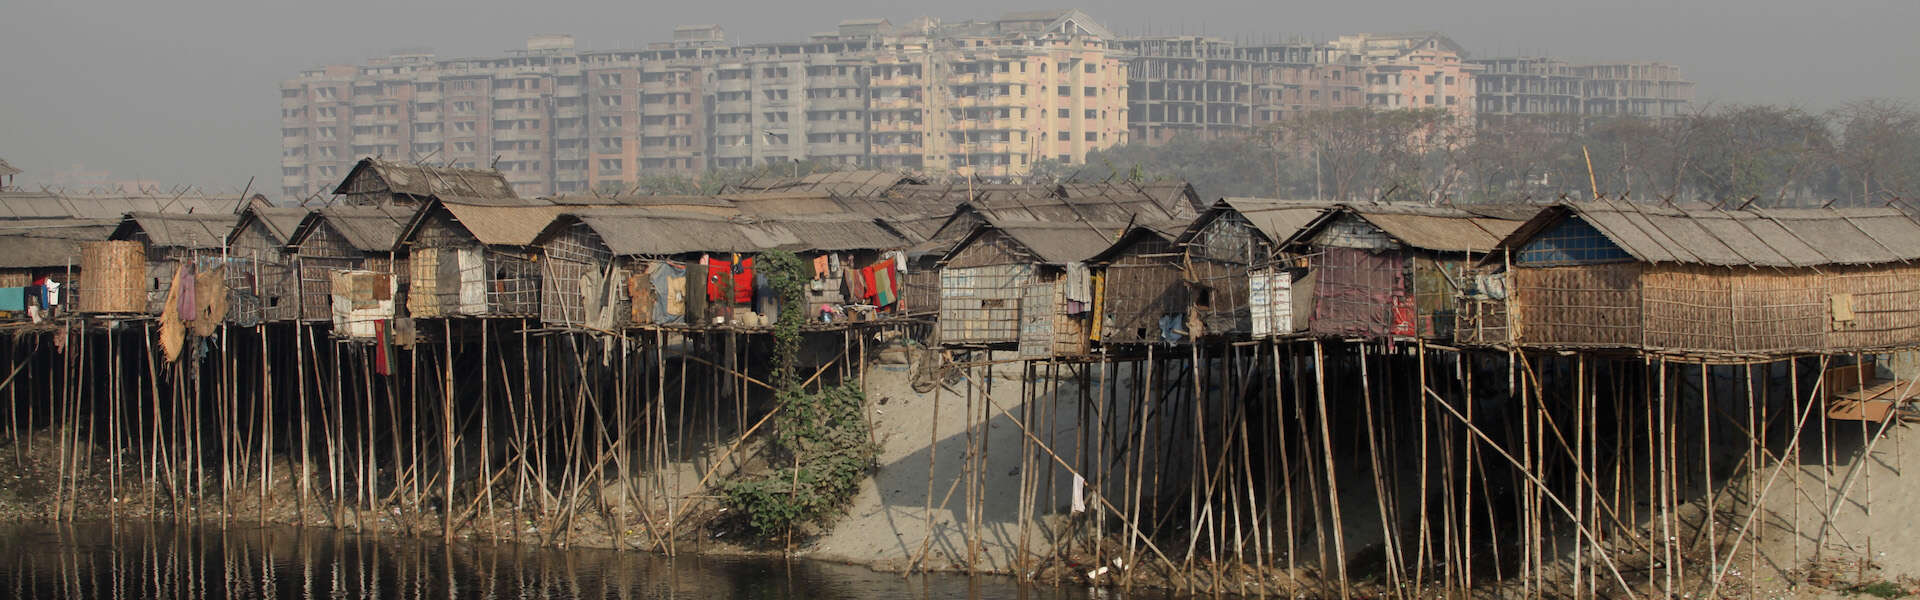 Reimagining Slums: Innovative Solutions to Bangladesh's Urban Housing Dilemma